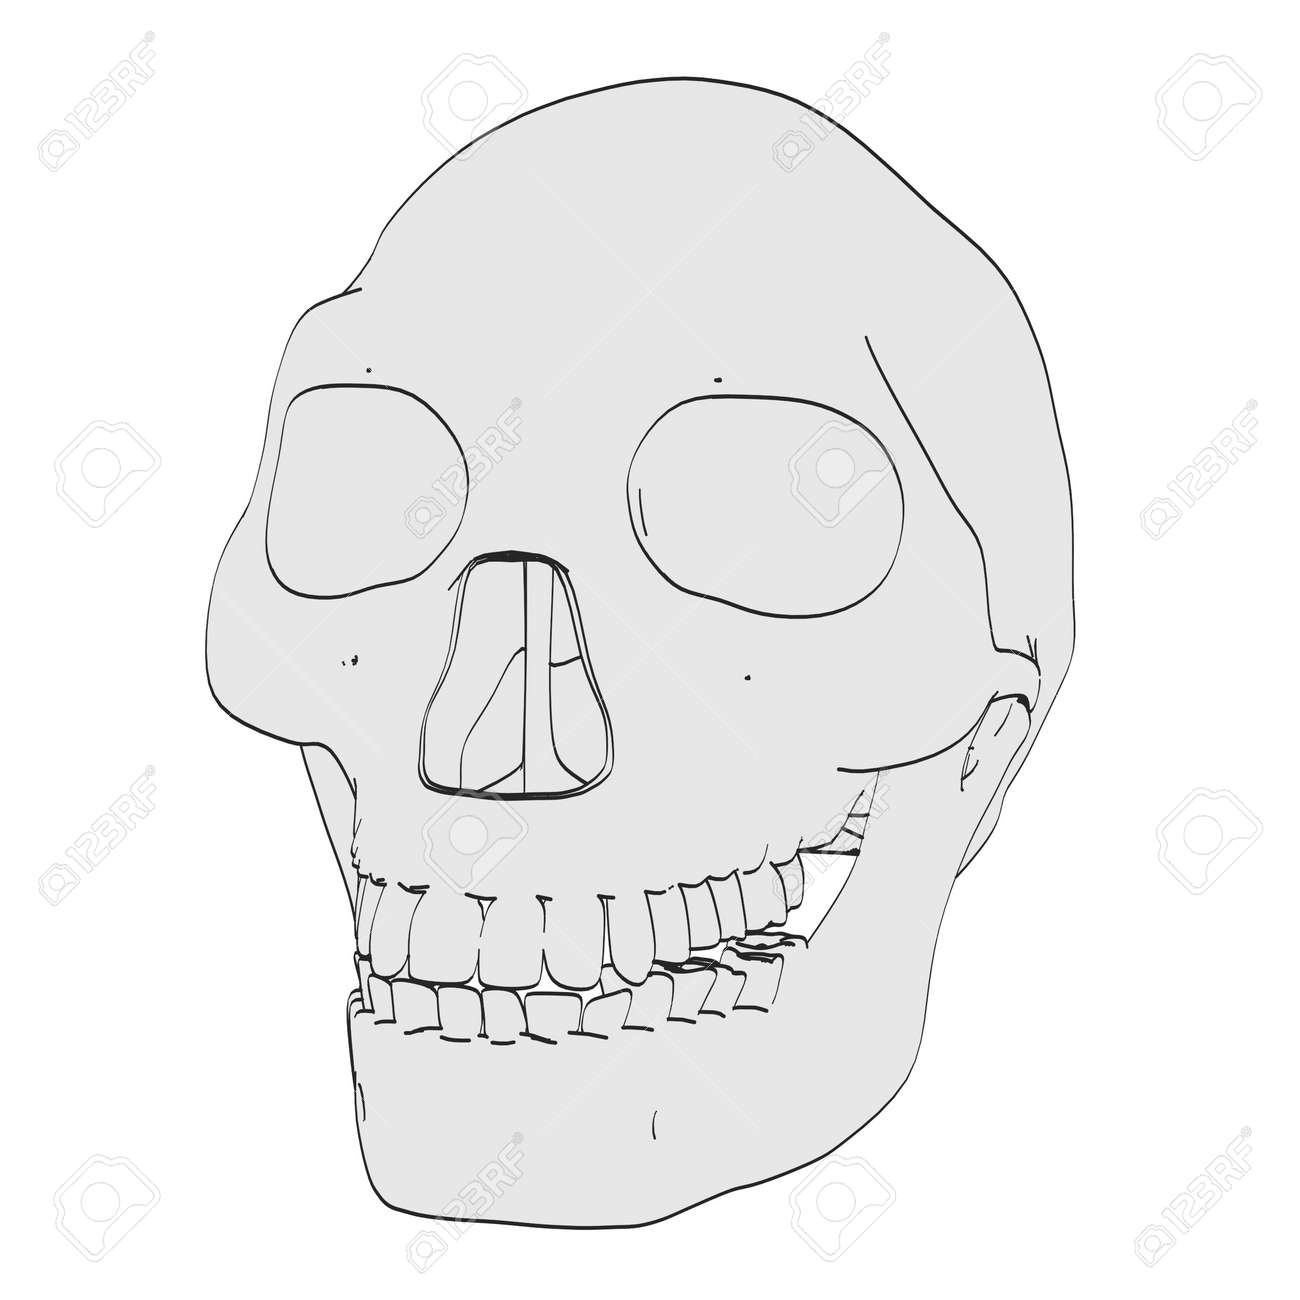 Cartoon Image Of Homo Erectus Skull Stock Photo Picture And Royalty